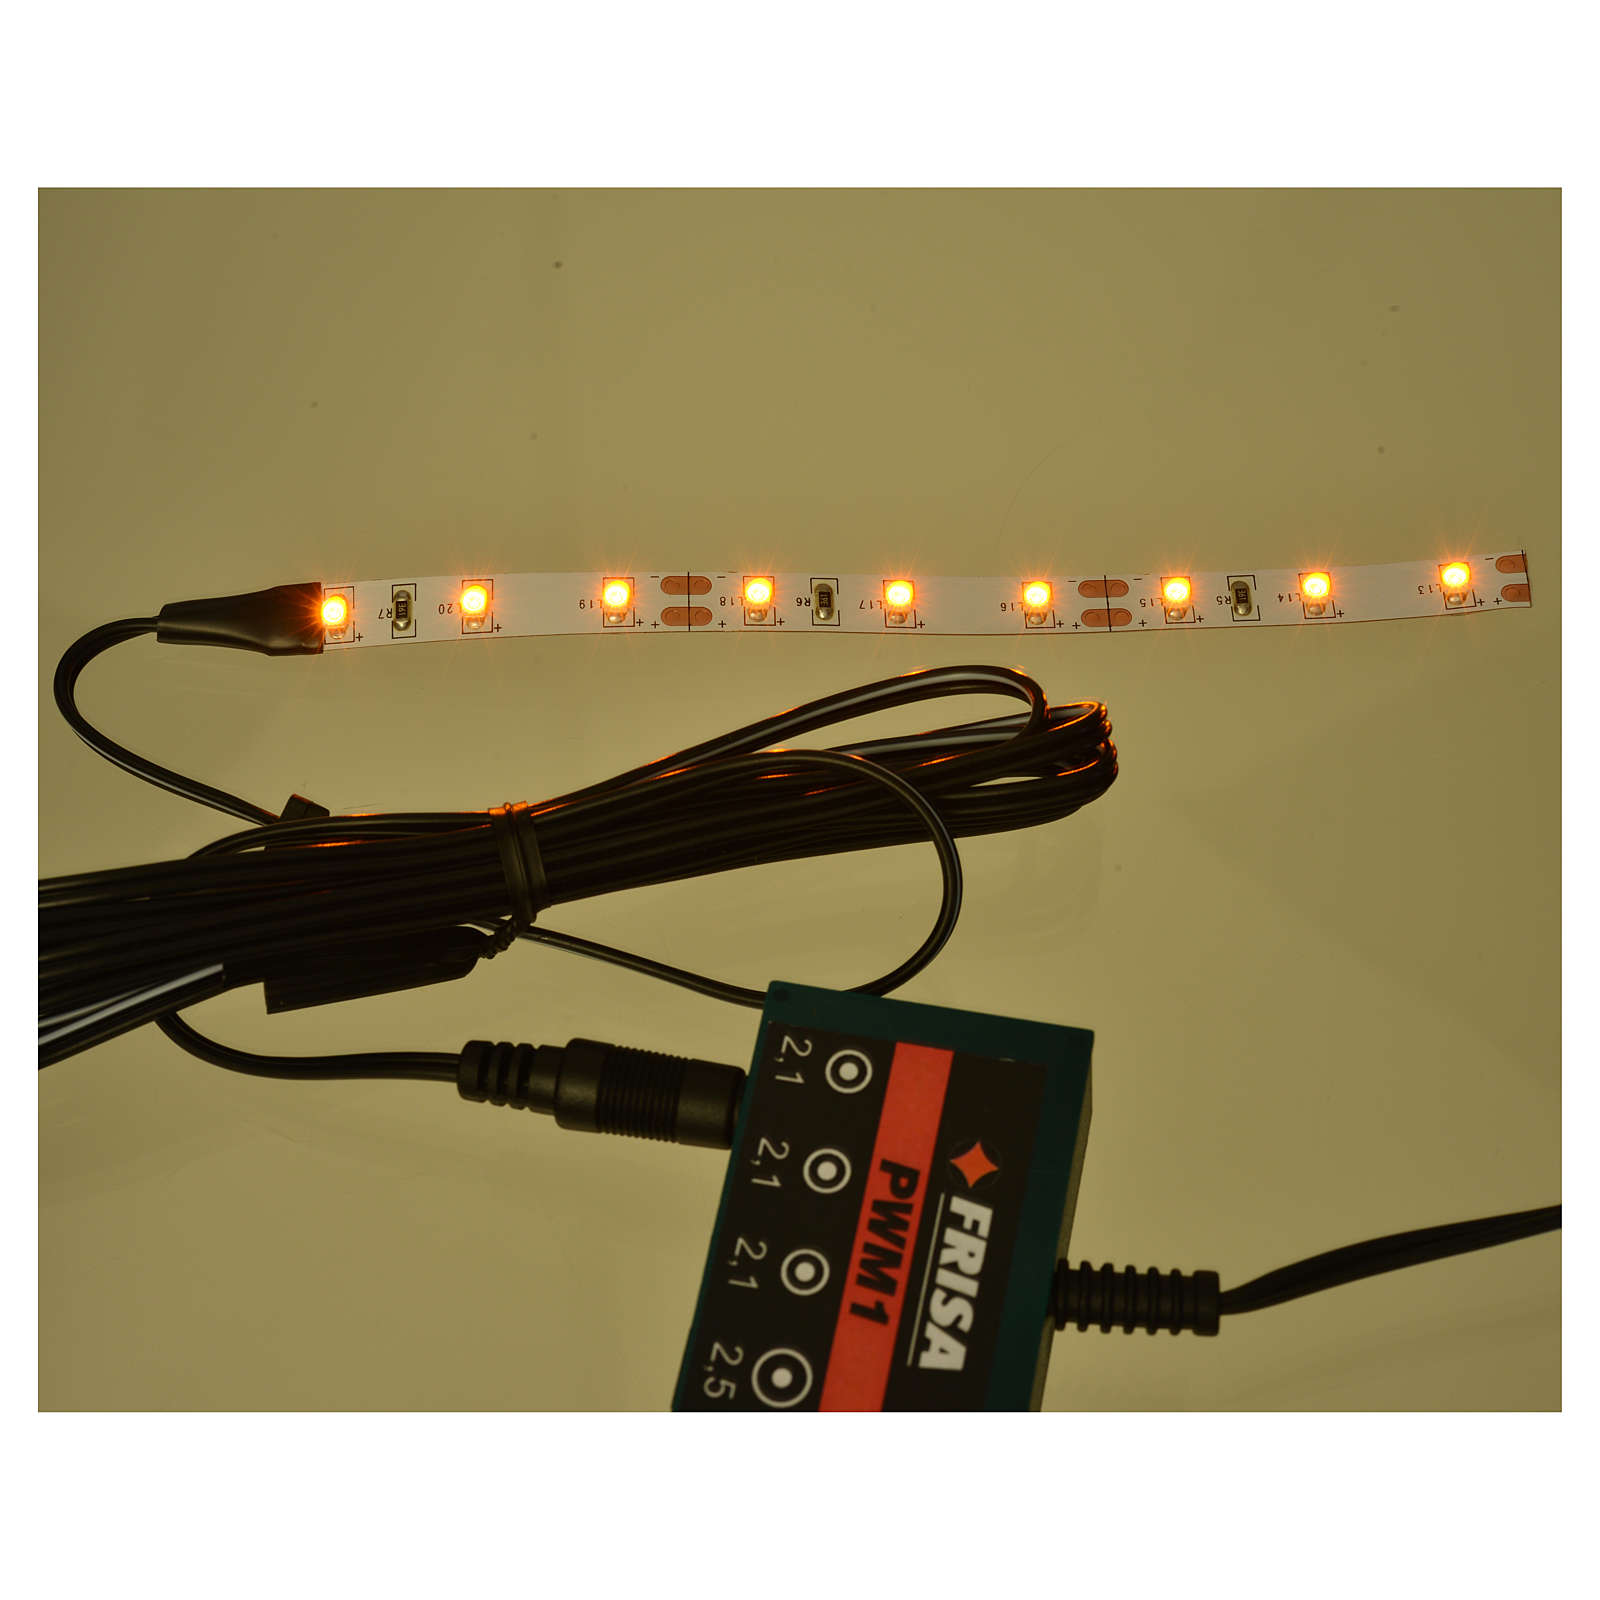 Led strisce 9 led cm 0,8x12 cm gialla per Frisalight 4